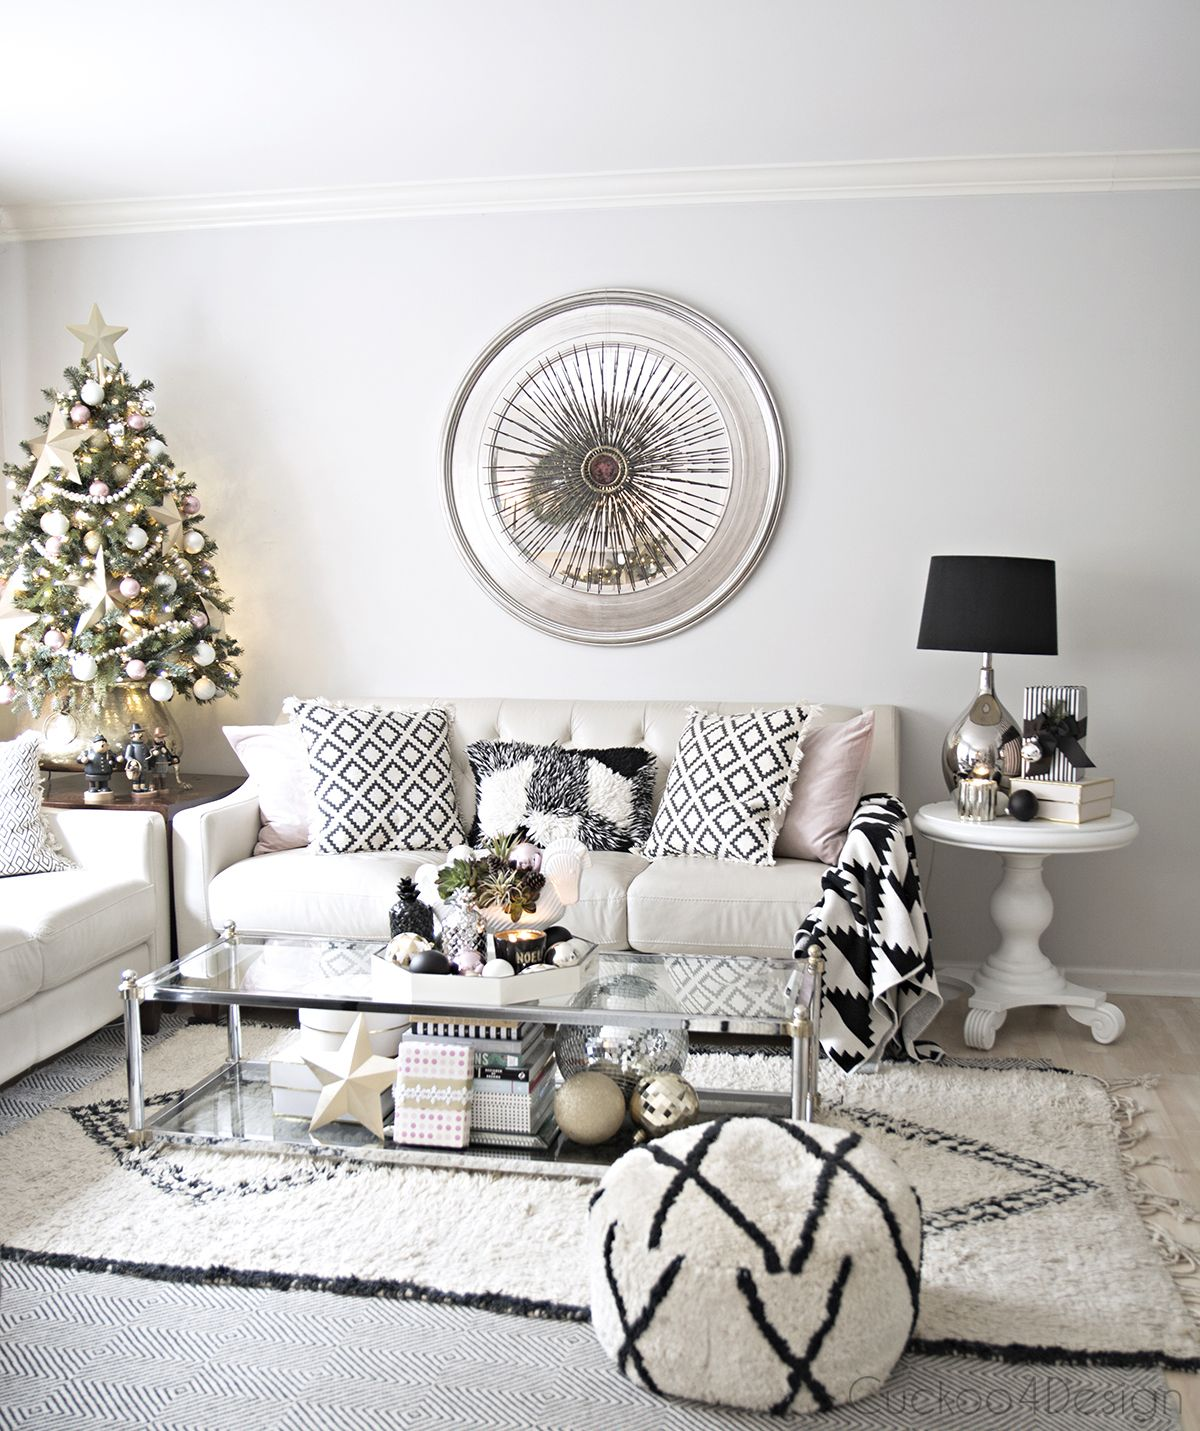 Better Homes and Gardens Christmas Ideas Home Tour | Cuckoo ...